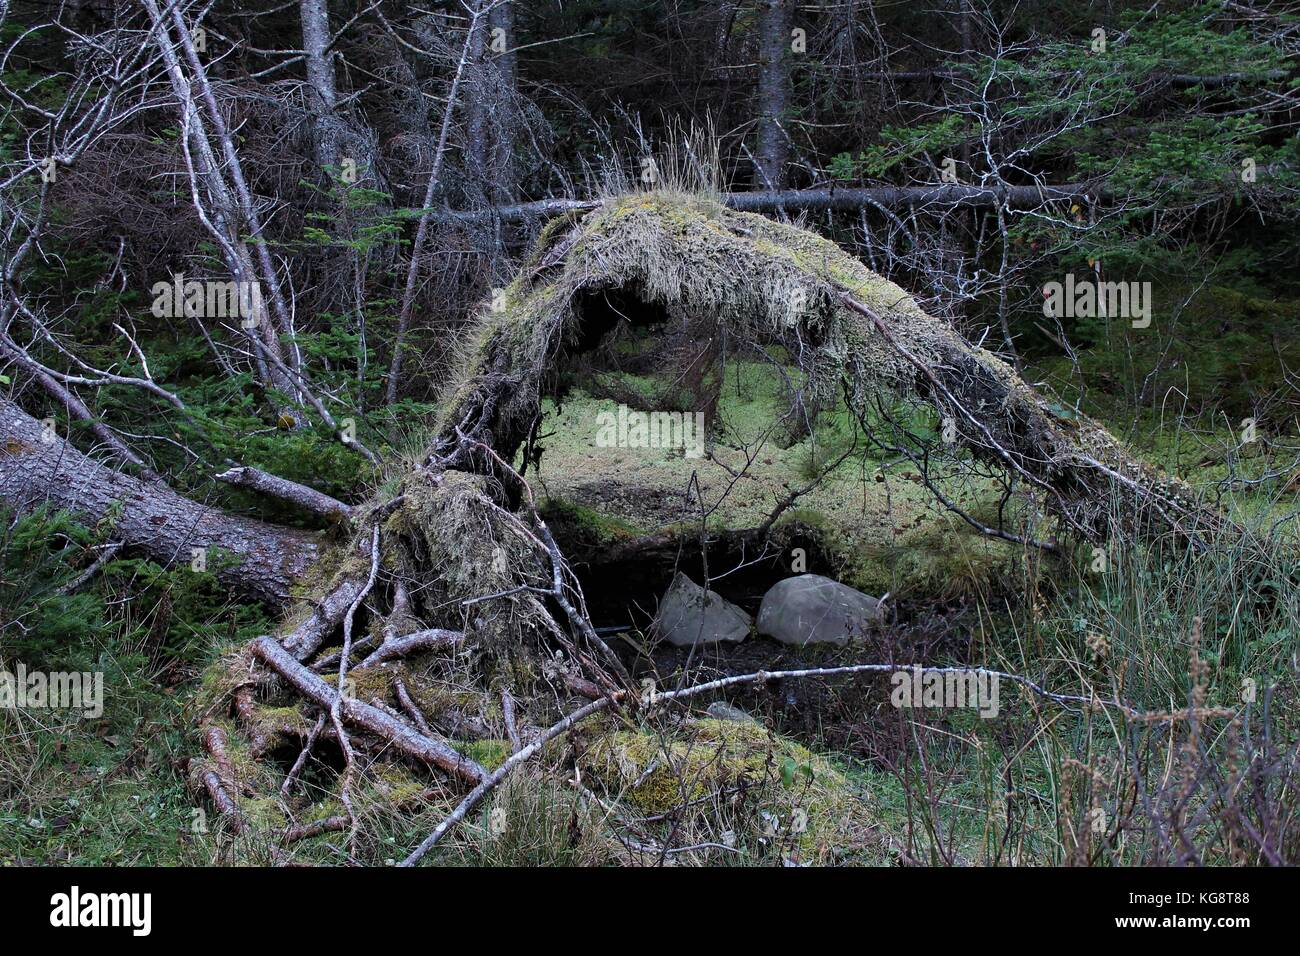 Exposed tree roots from fallen tree in the forest create a canopy over two rocks. - Stock Image